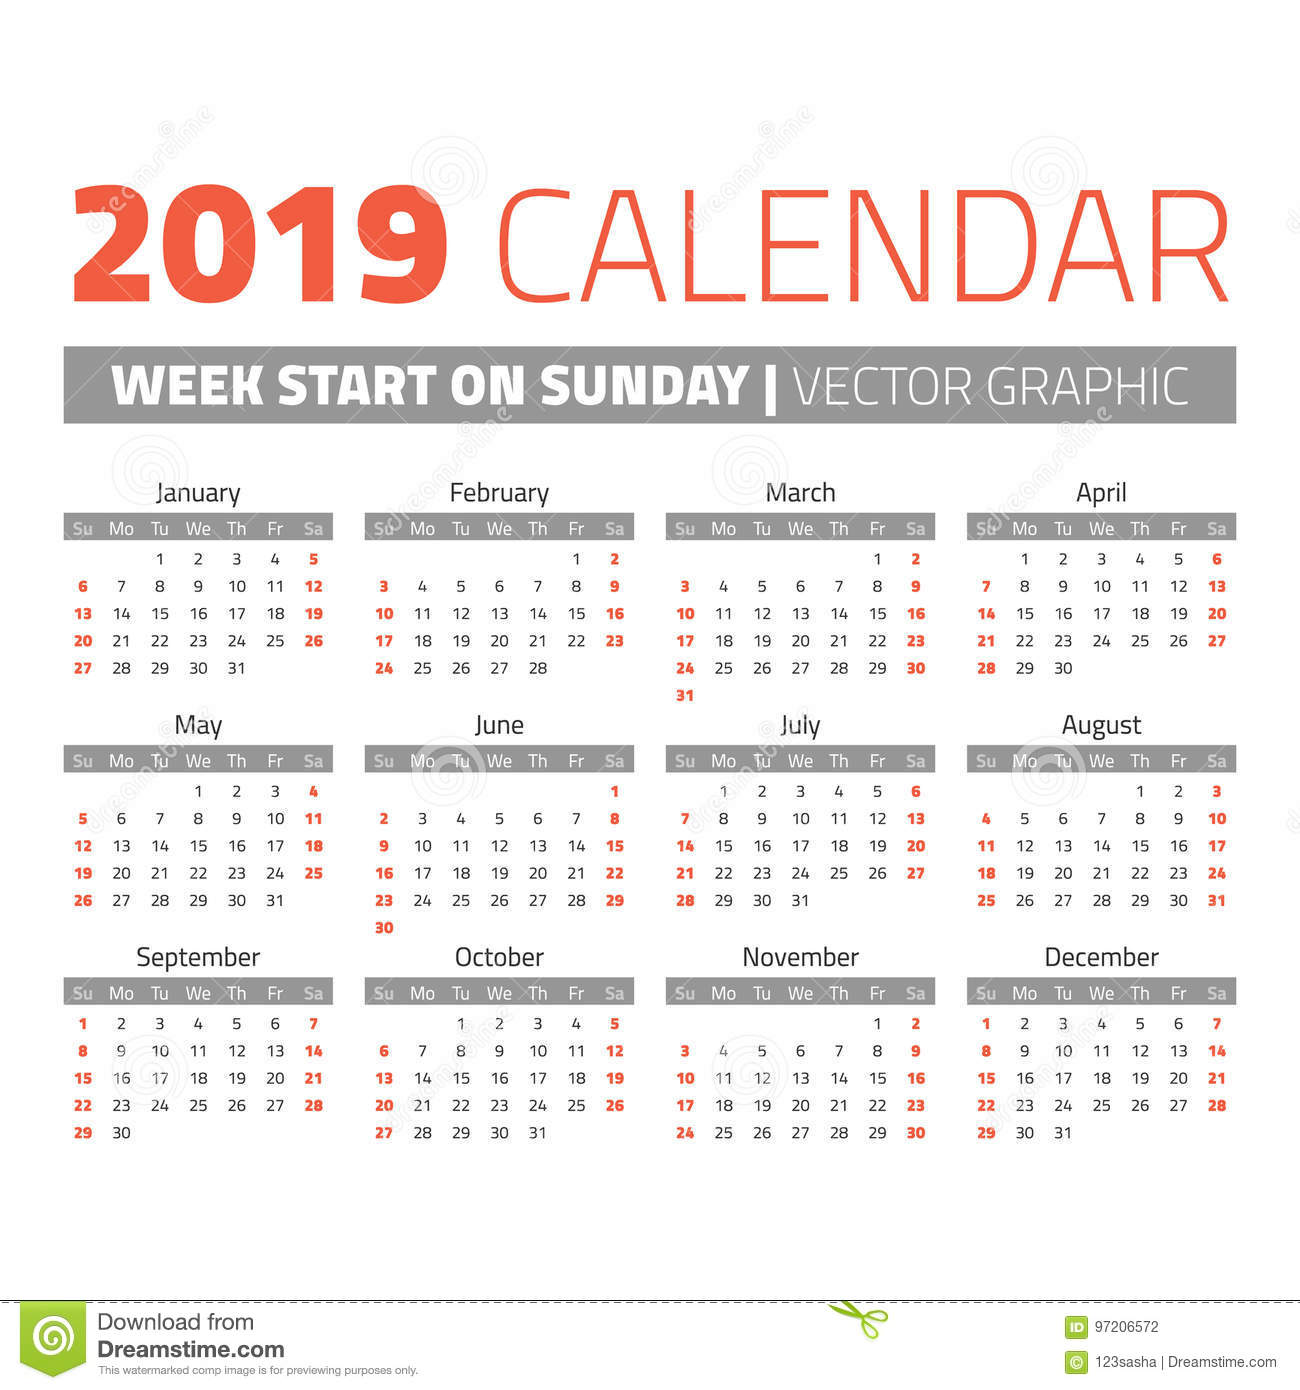 Calendario 206.Calendario Simple De 2019 Anos Ilustracion Del Vector